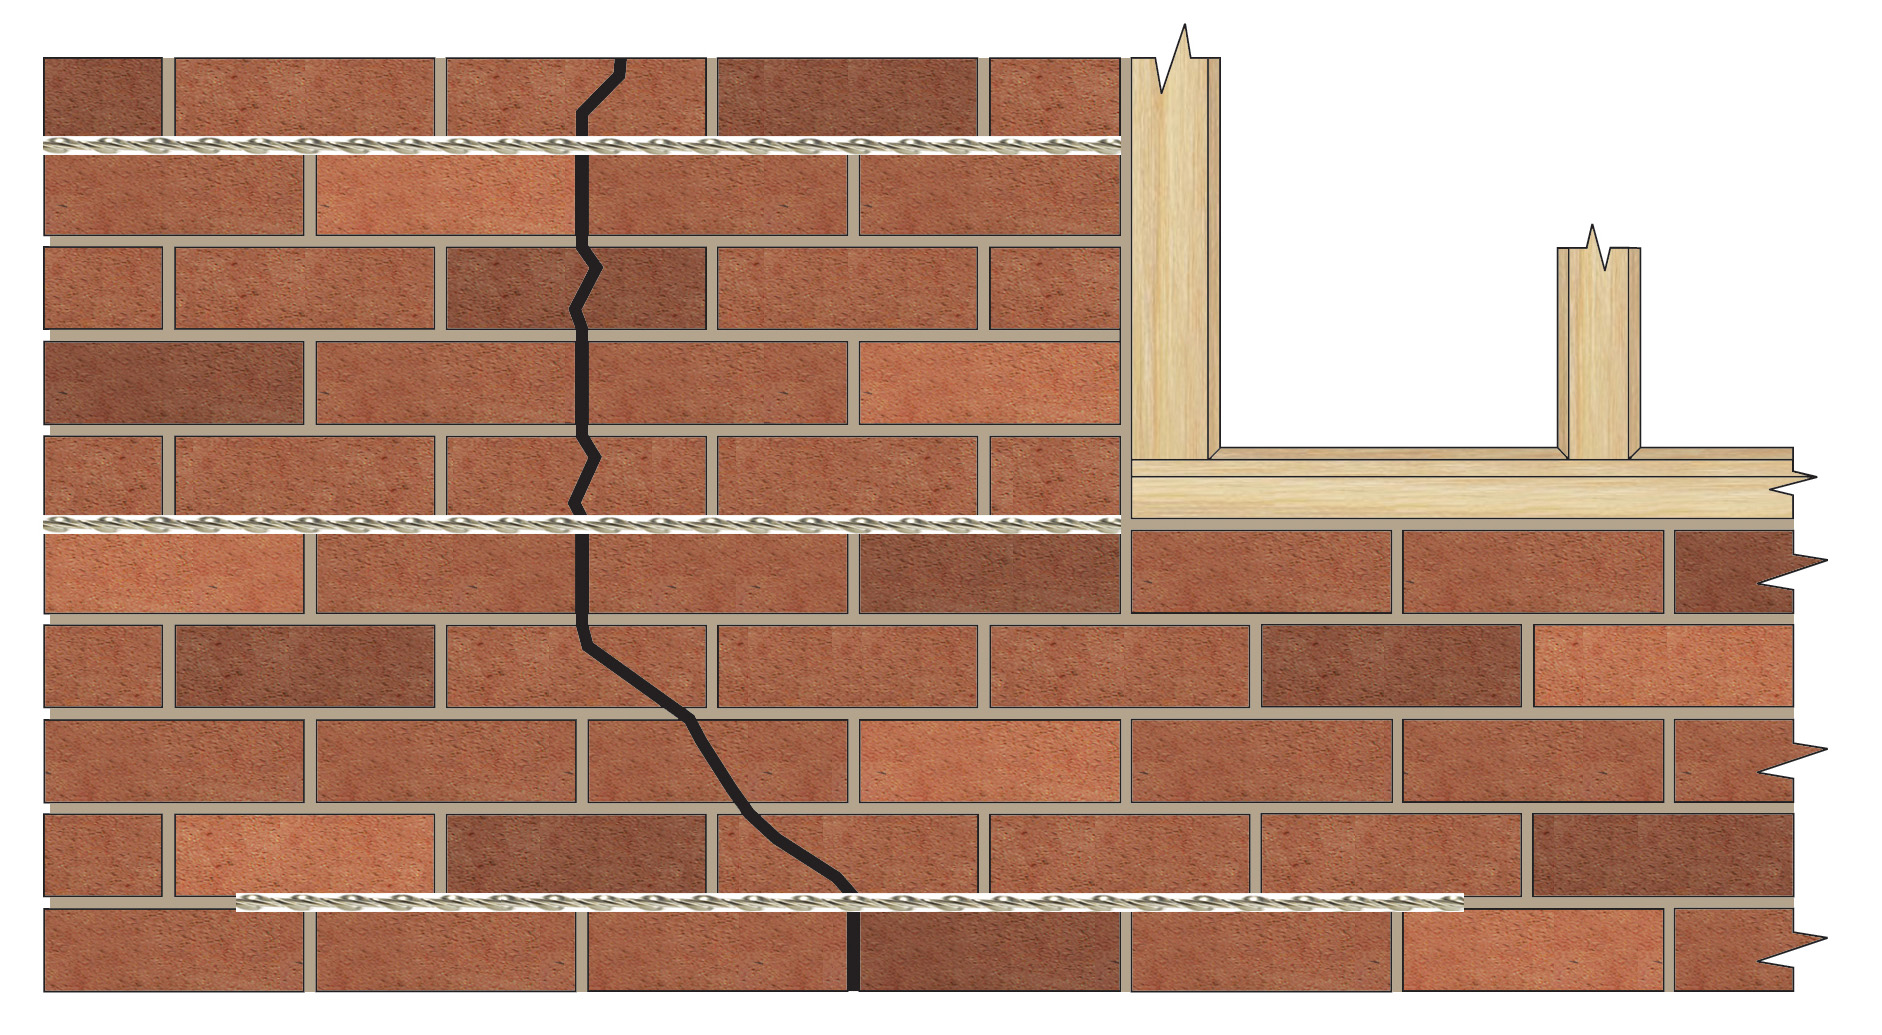 Cracked brick wall drawing brick wall - Repairing Cracks Near Corners Openings